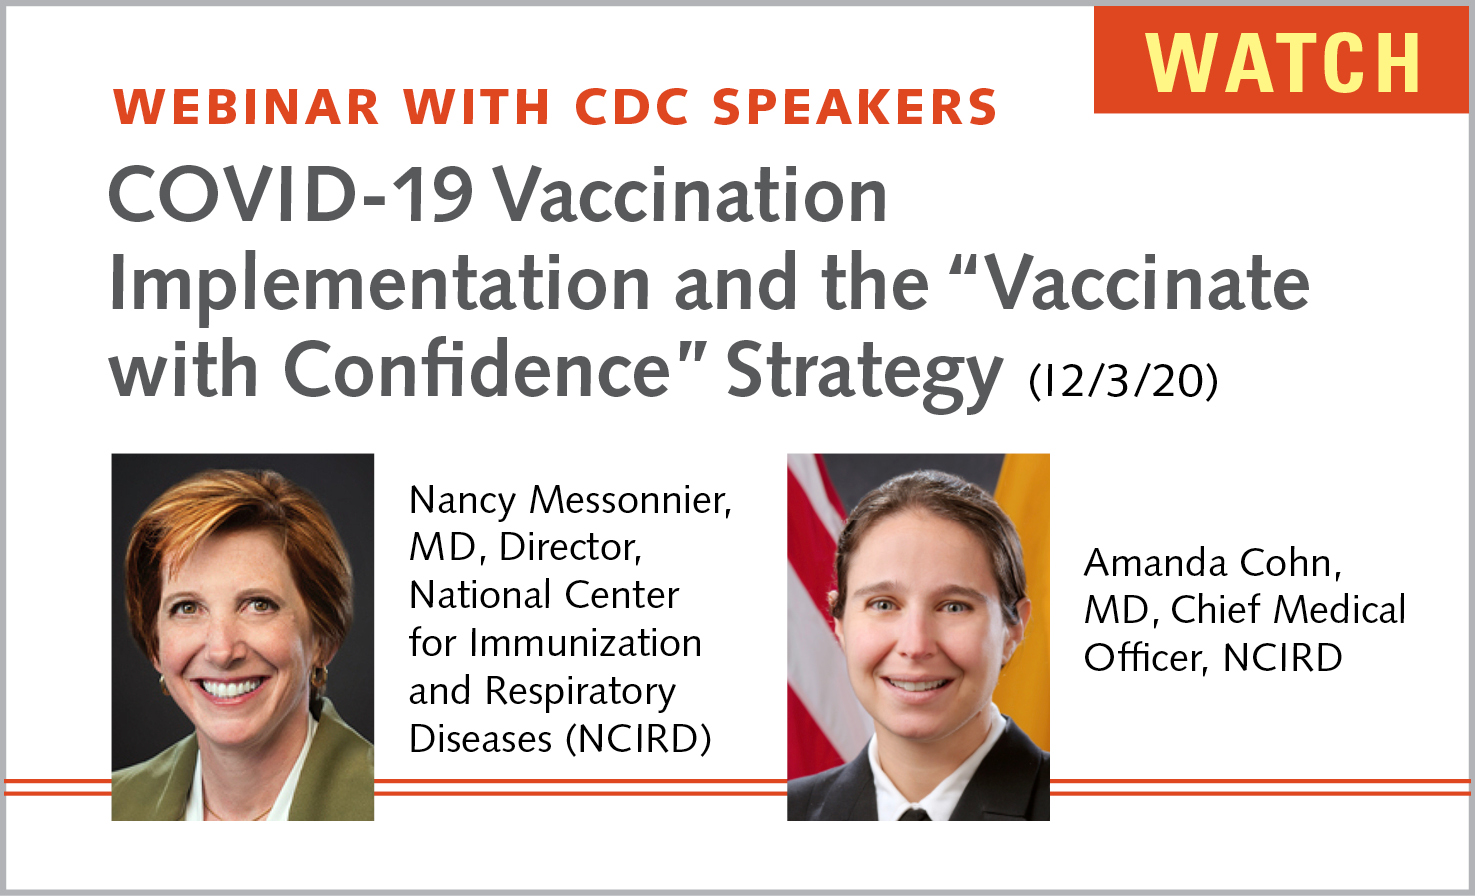 CDC Webinar Speakers